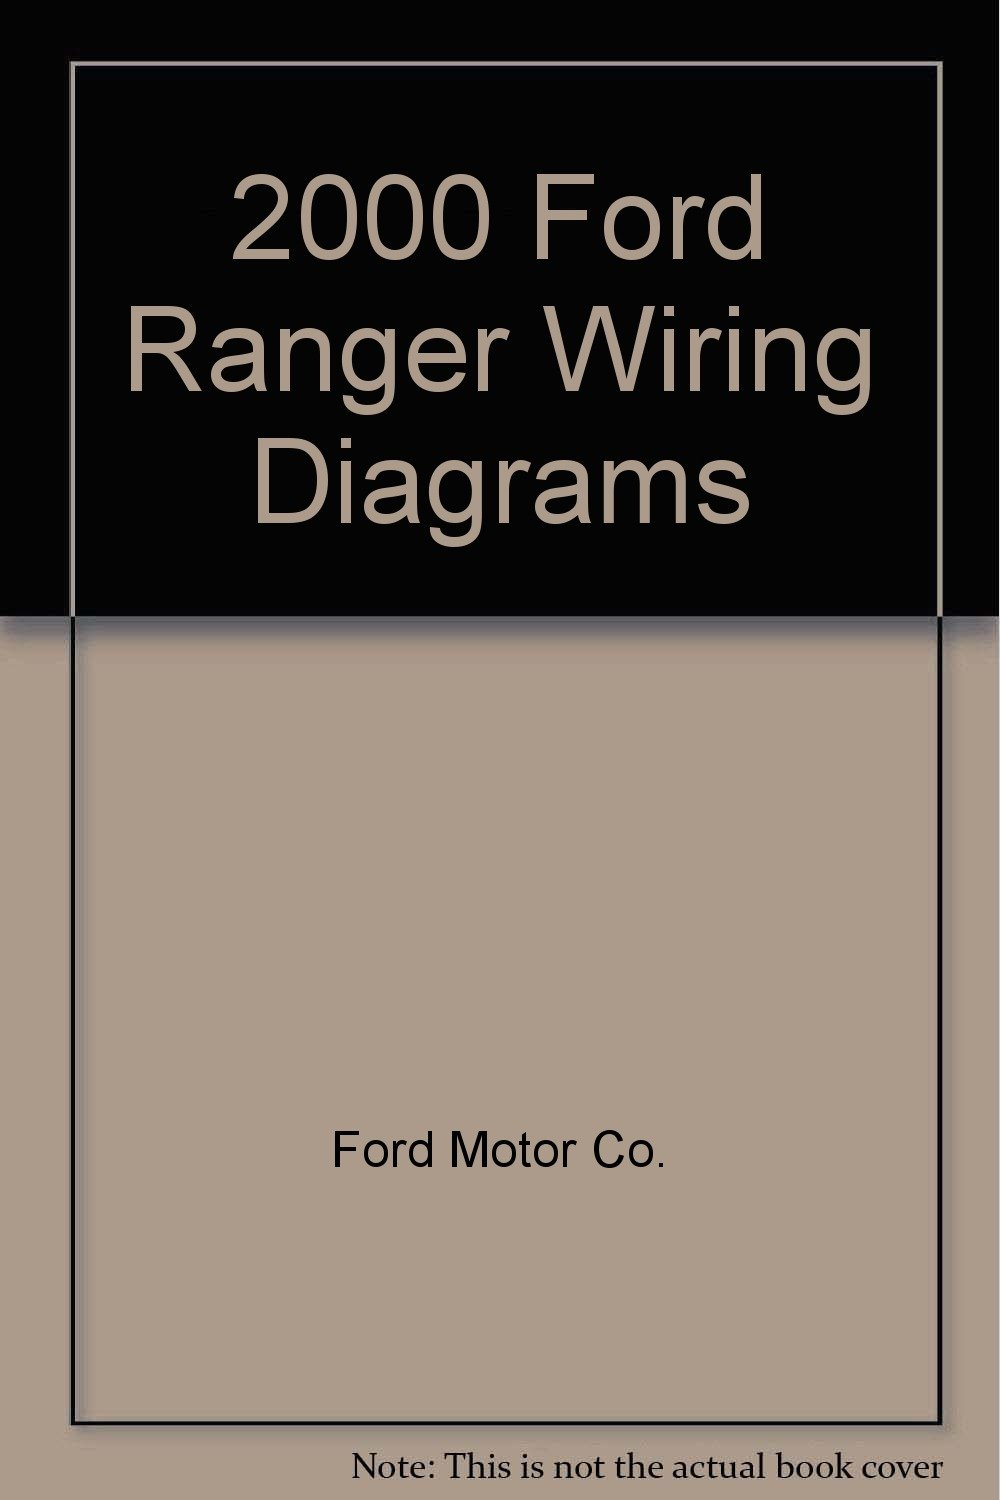 2000 Ford Ranger Wiring Diagram Manual from images-na.ssl-images-amazon.com